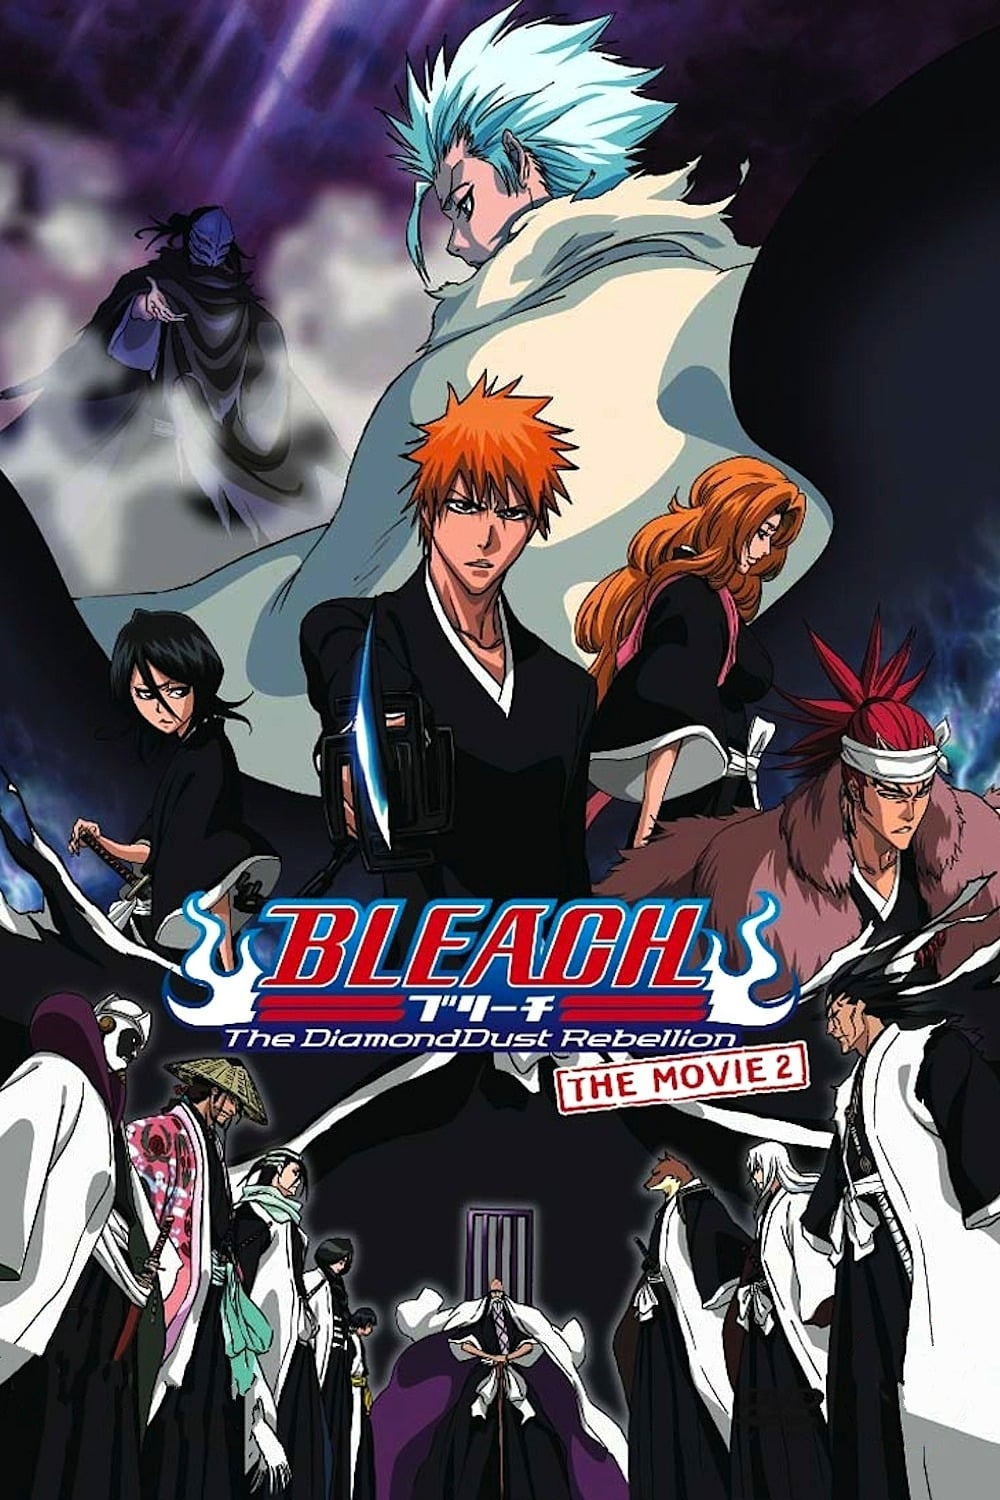 Nonton anime Bleach Movie 2: The DiamondDust Rebellion – Mou Hitotsu no Hyourinmaru Sub Indo